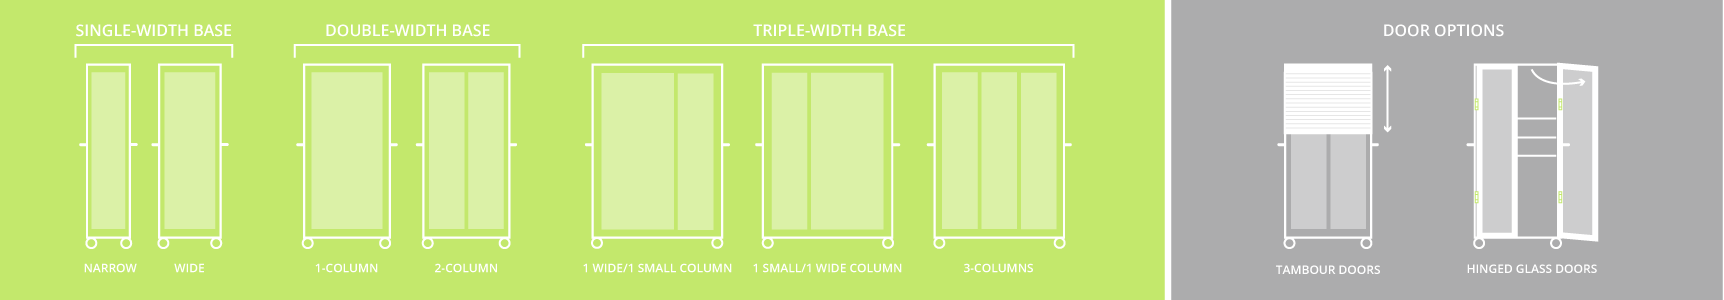 Logicell Cabinet Size Door Graphic